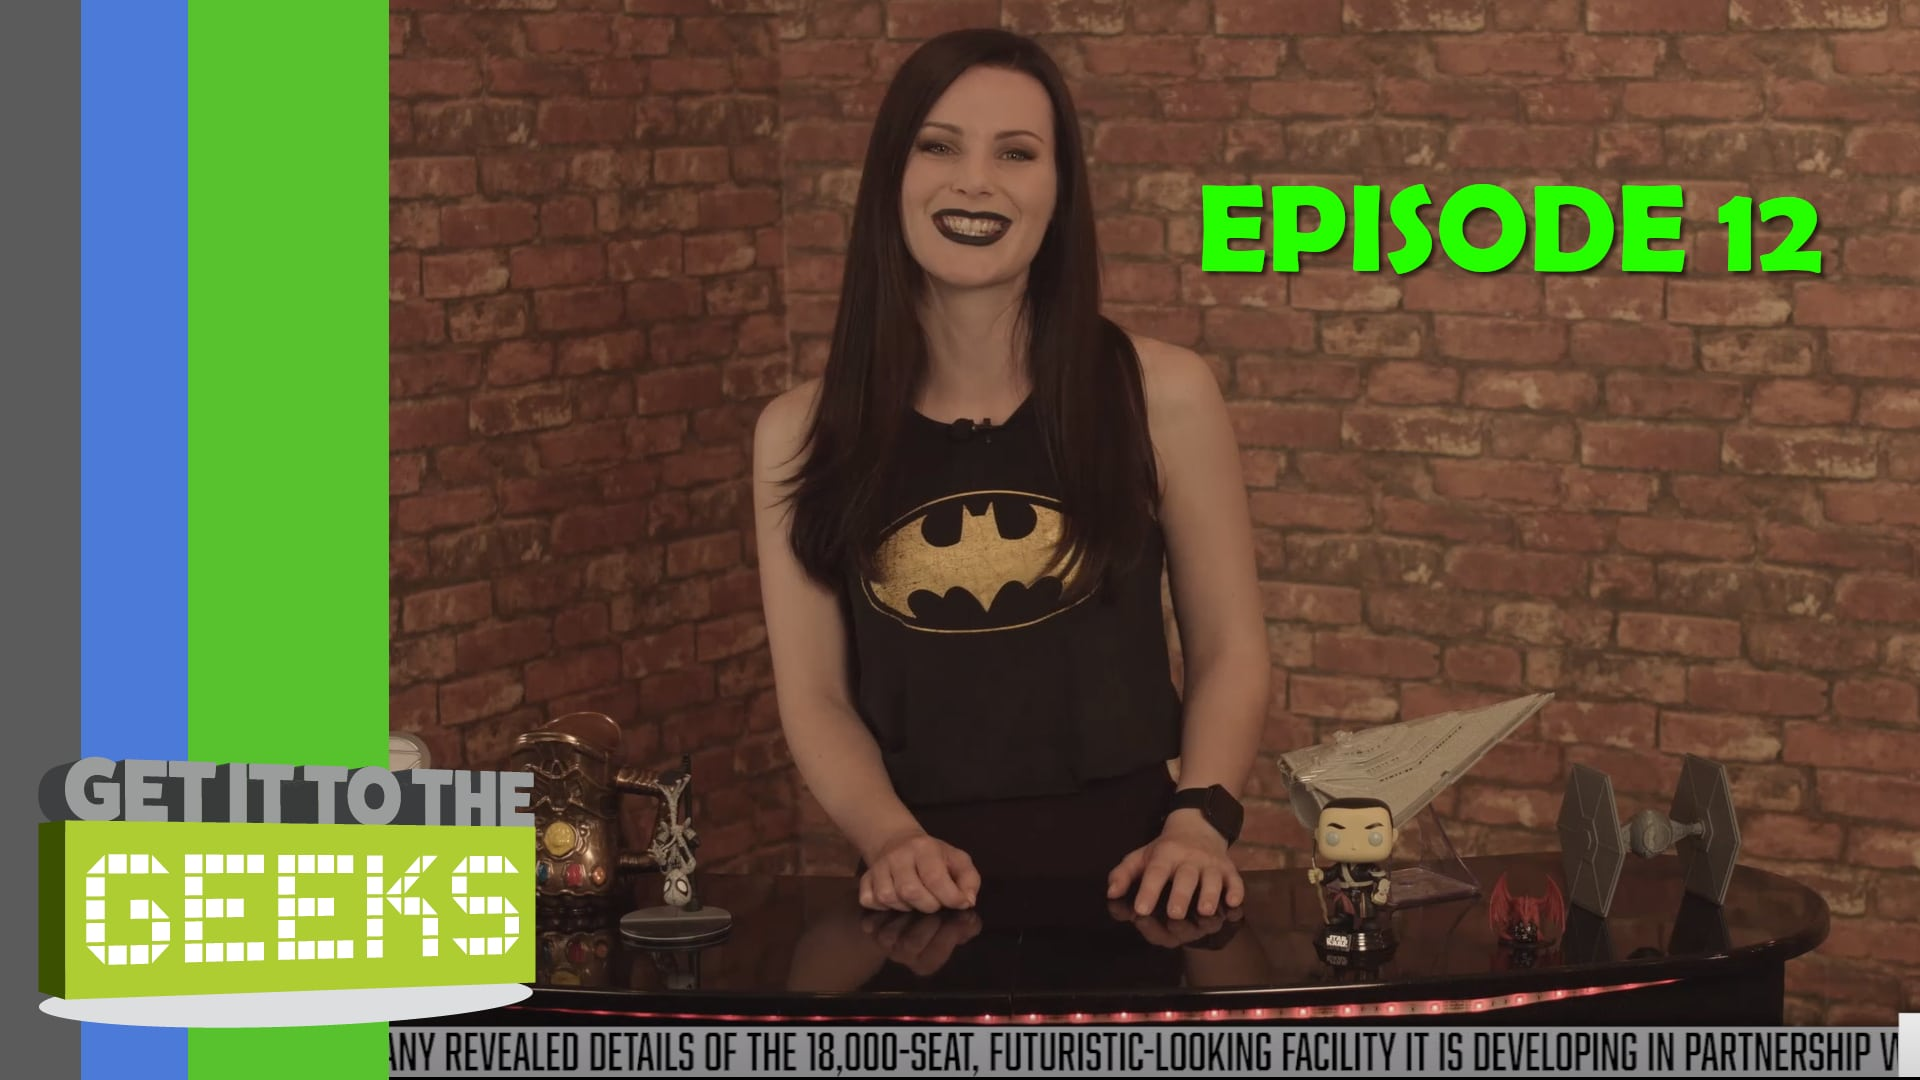 Get It To The Geeks - Episode 12: 12% Of A Plan